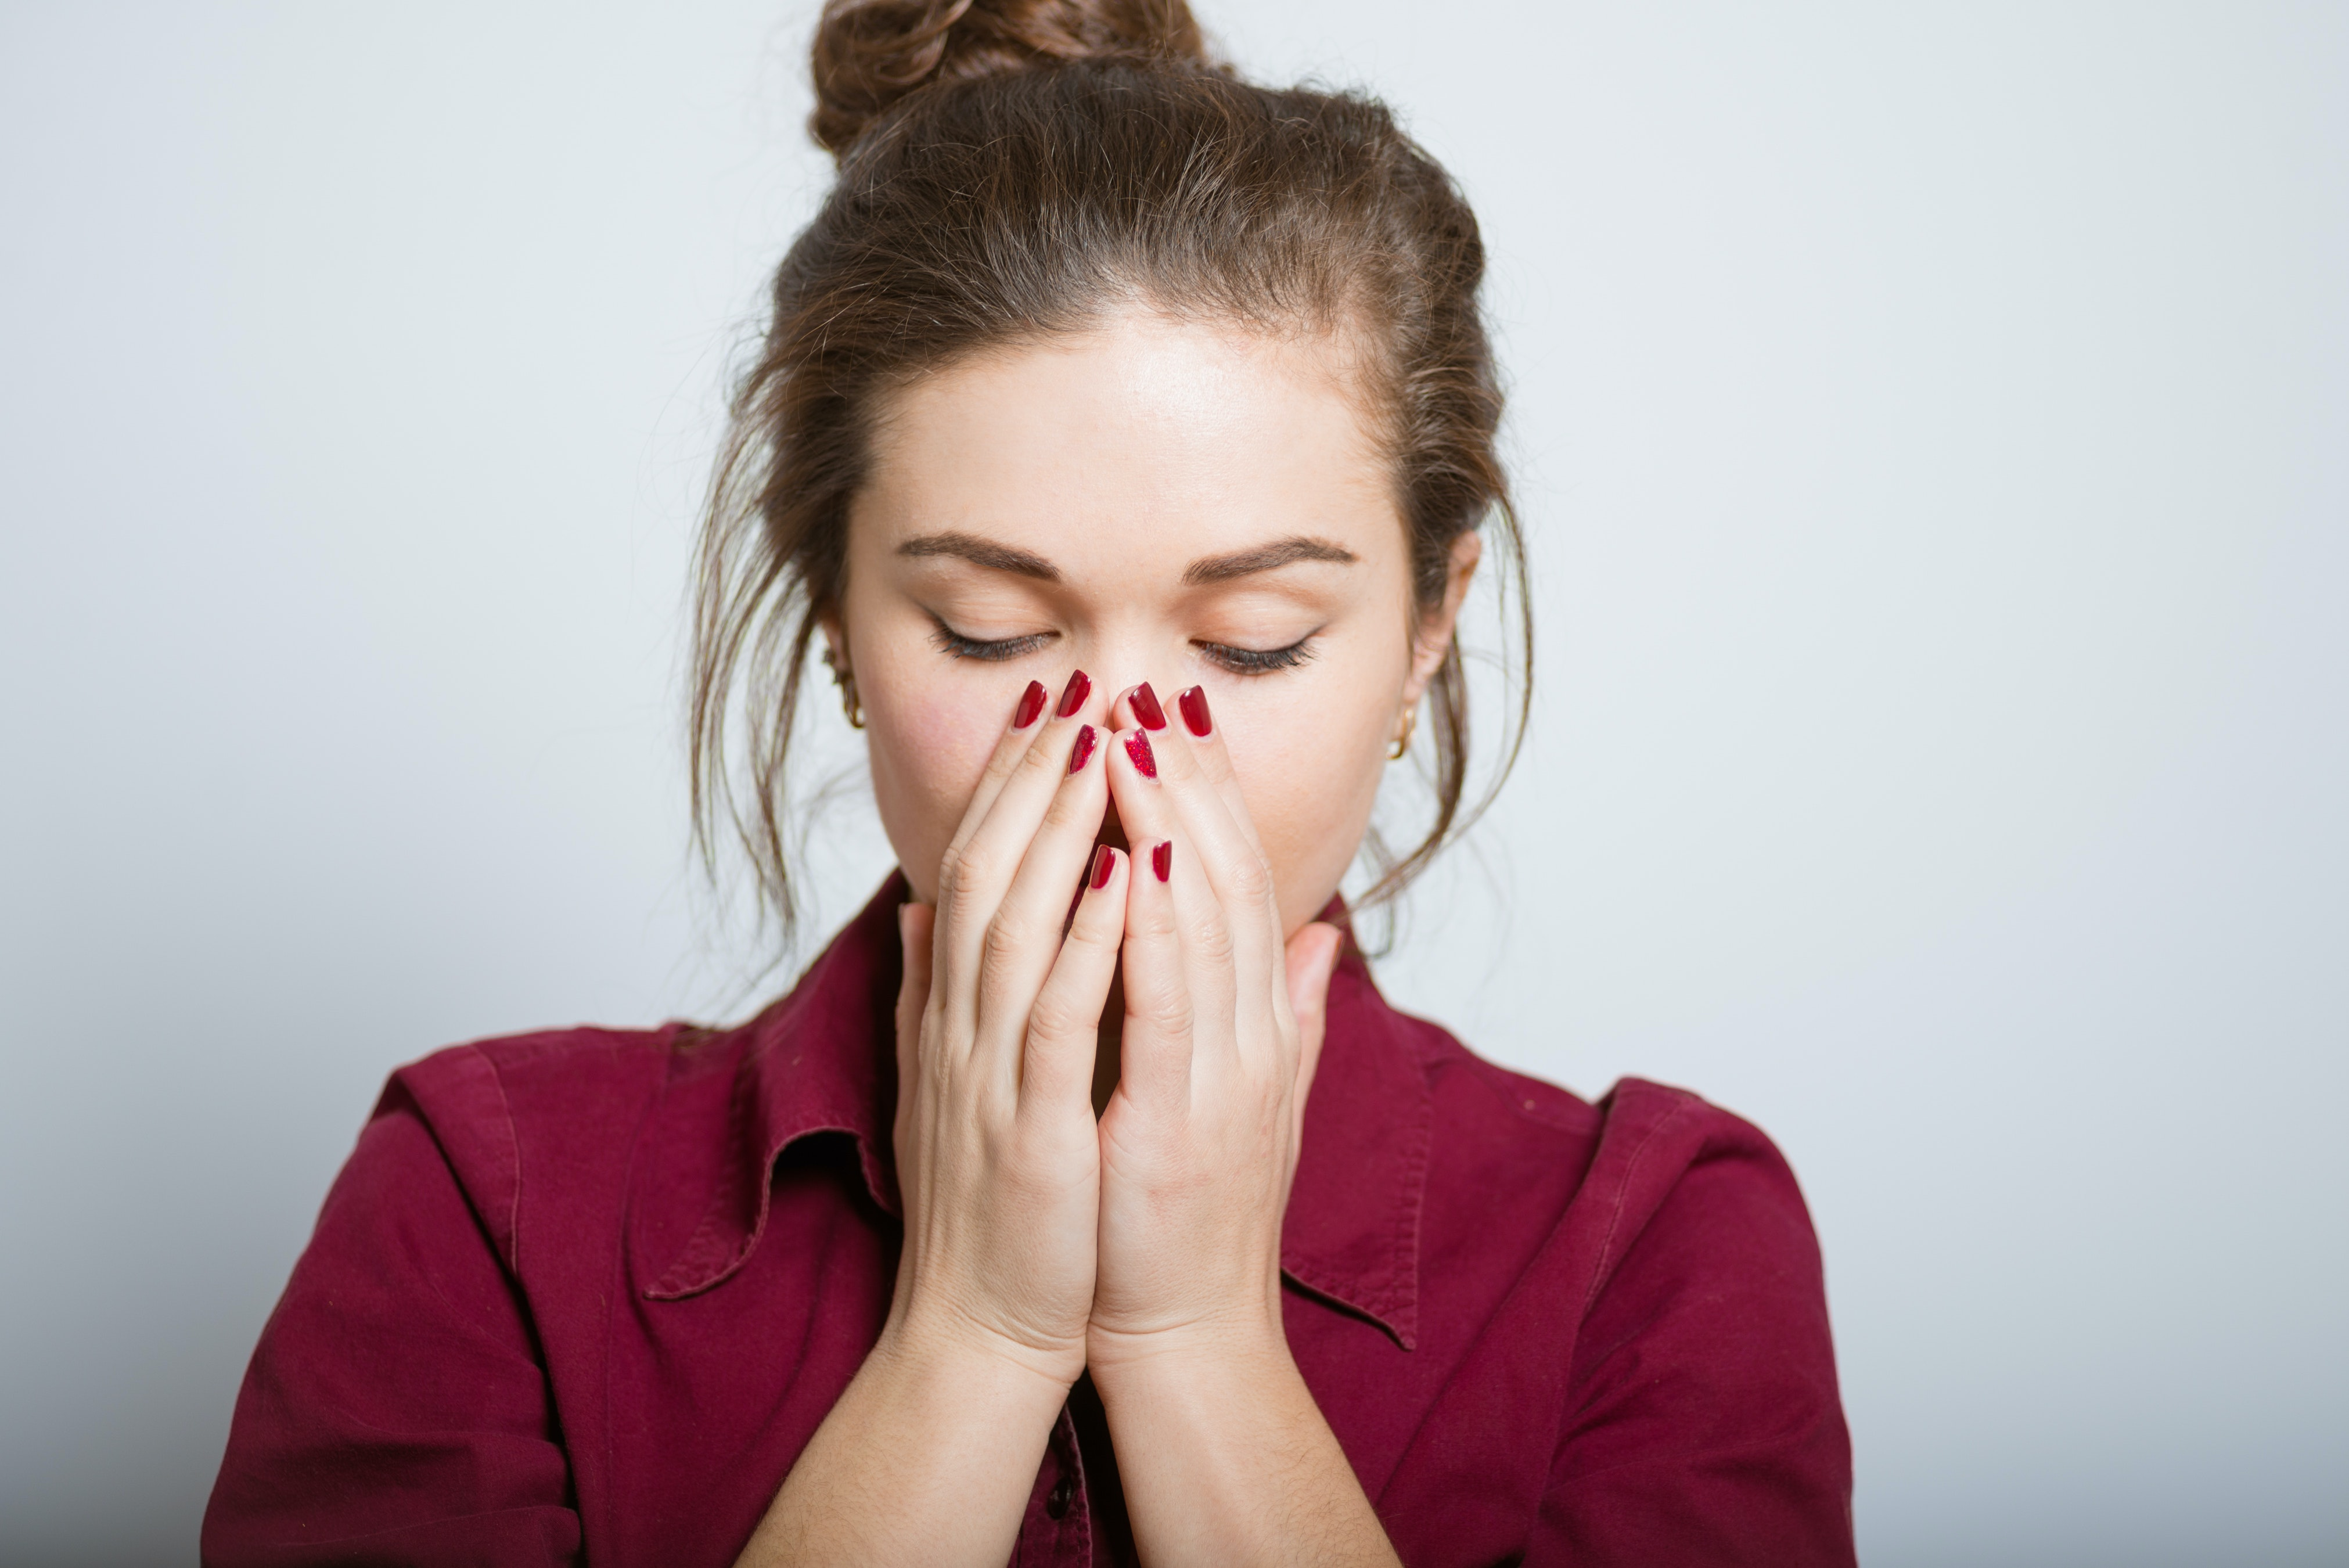 An image depicting a person suffering from nose redness symptoms